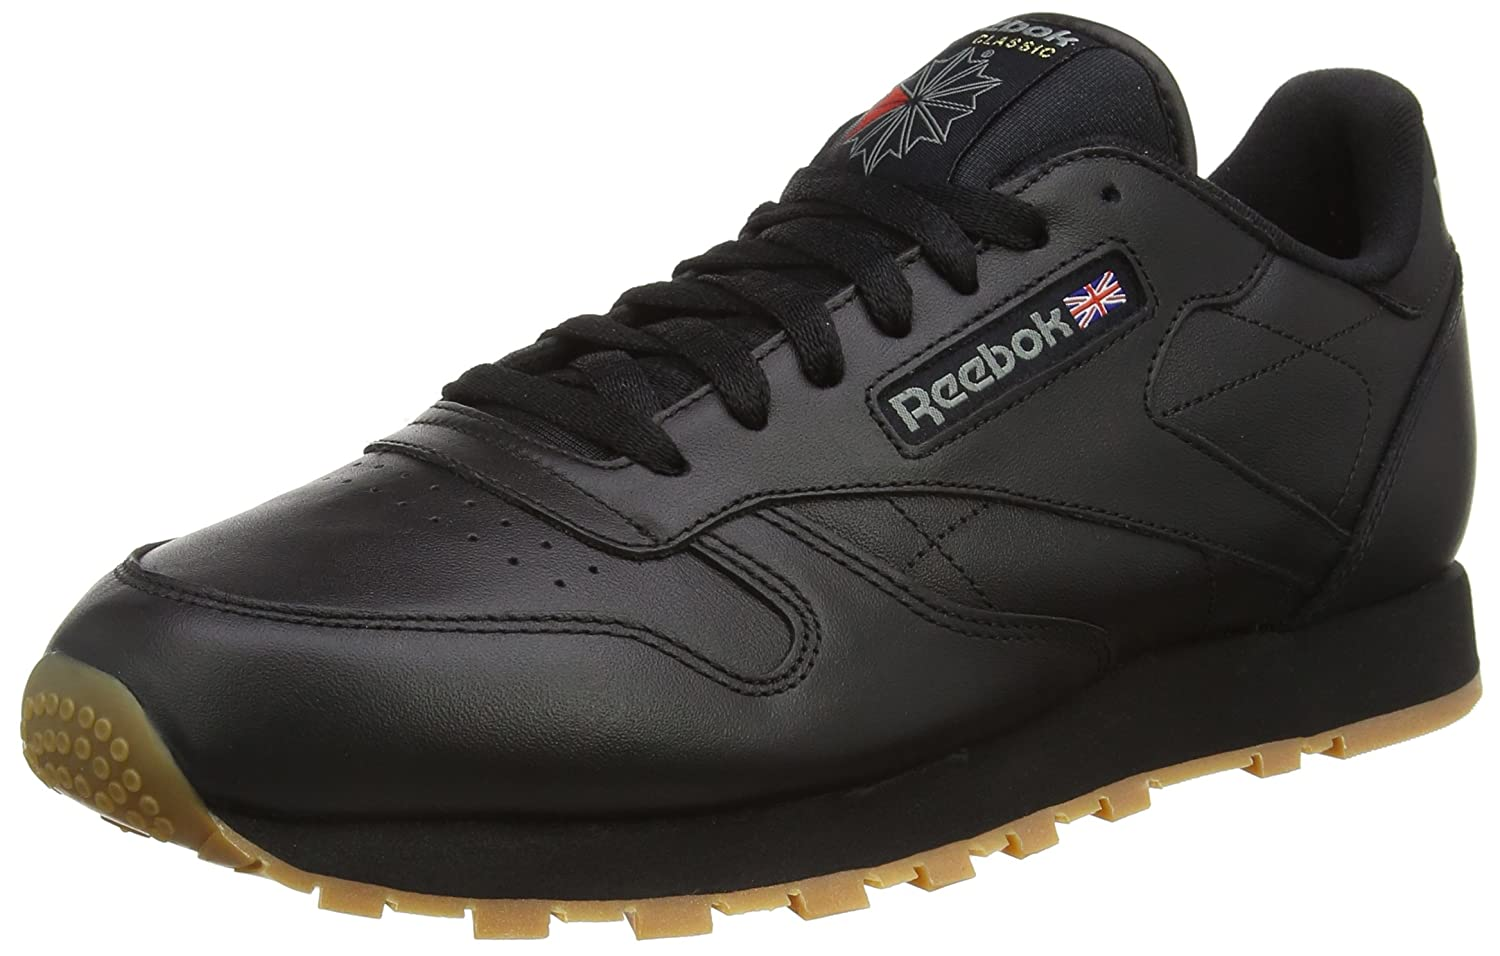 TALLA 42 EU. Reebok Classic Leather, Zapatillas Unisex Adulto